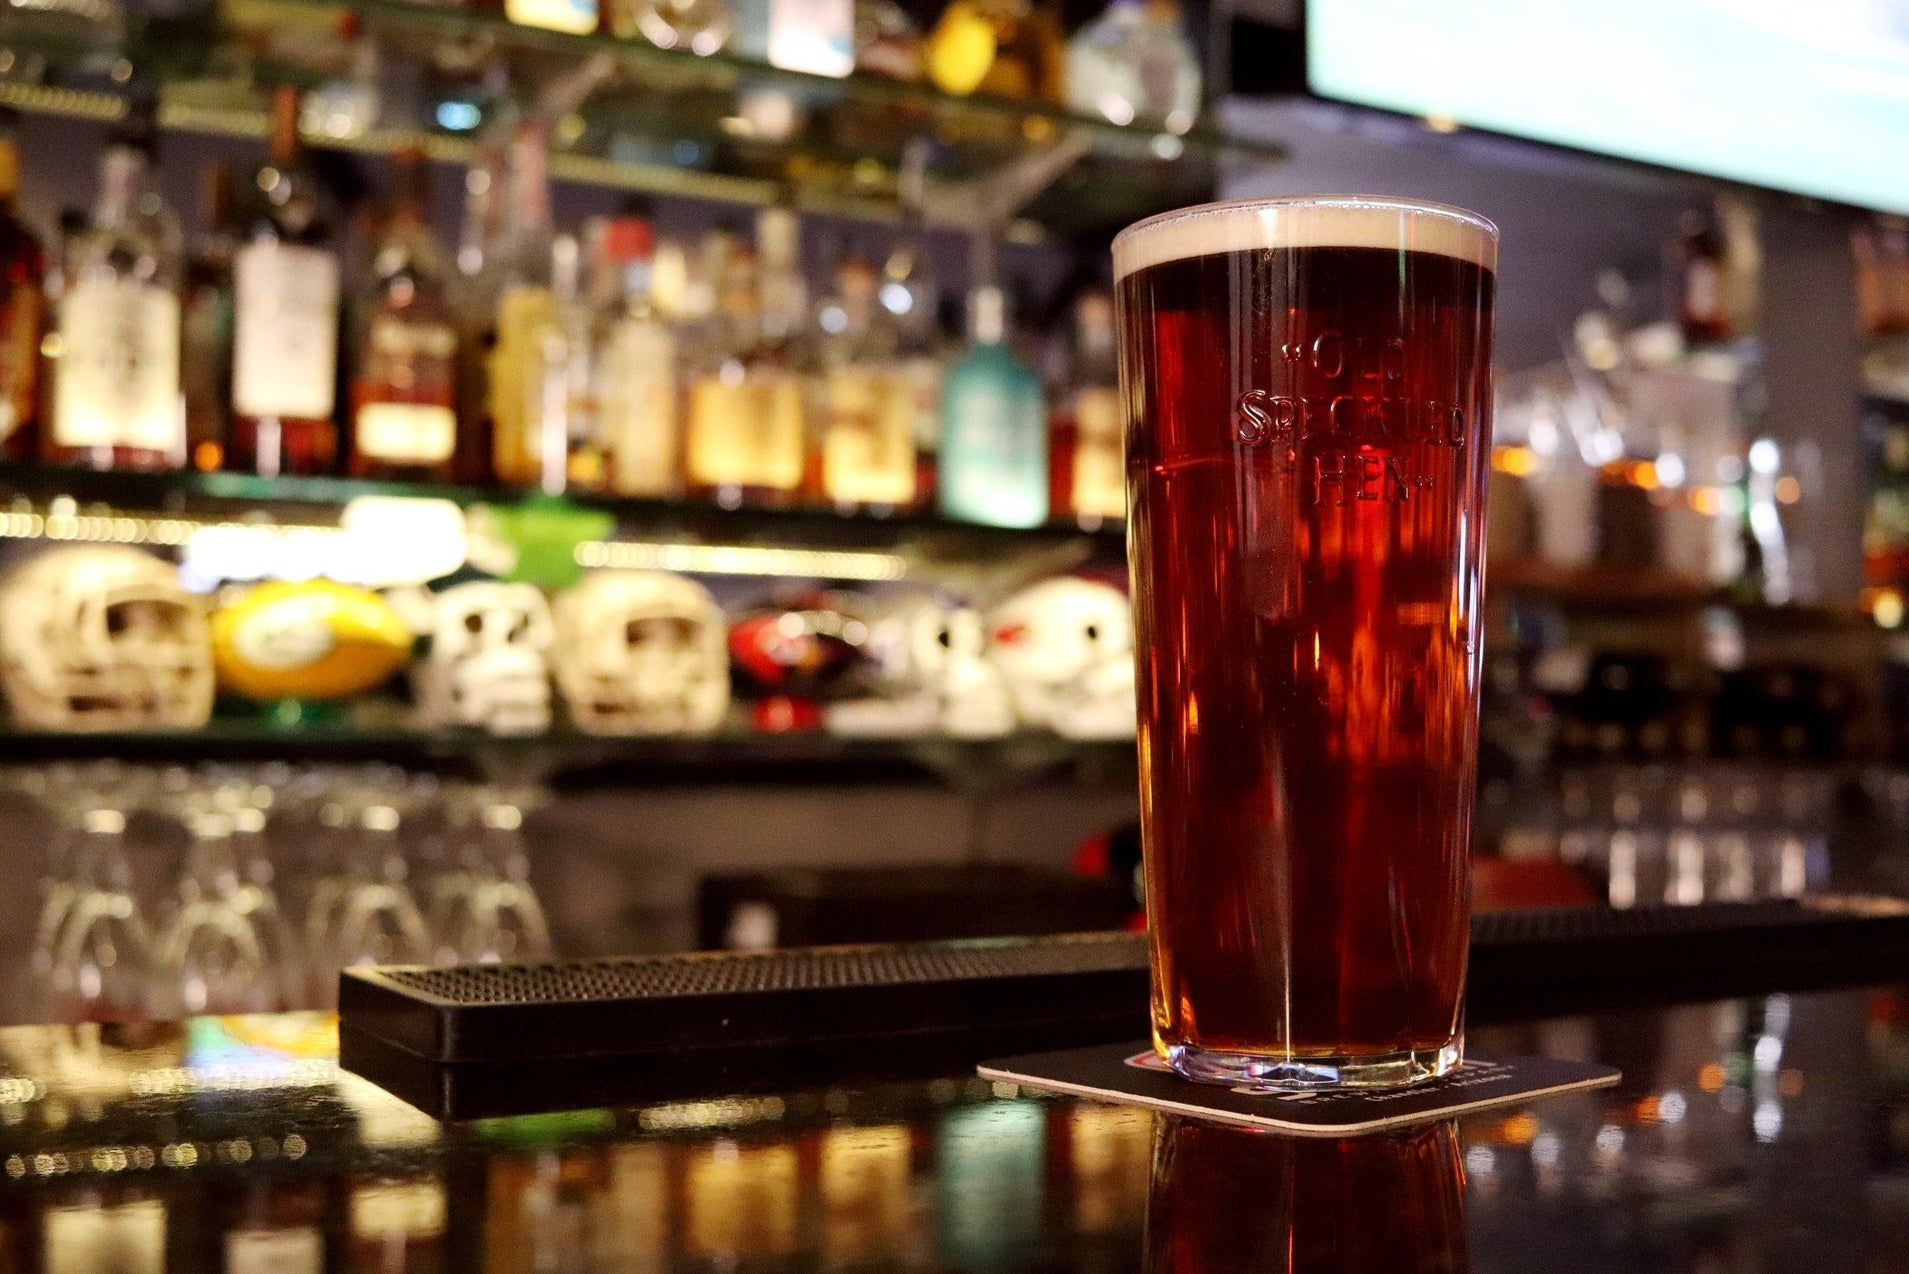 wetherspoons-offers-99p-pints-ahead-of-thursday's-national-lockdown